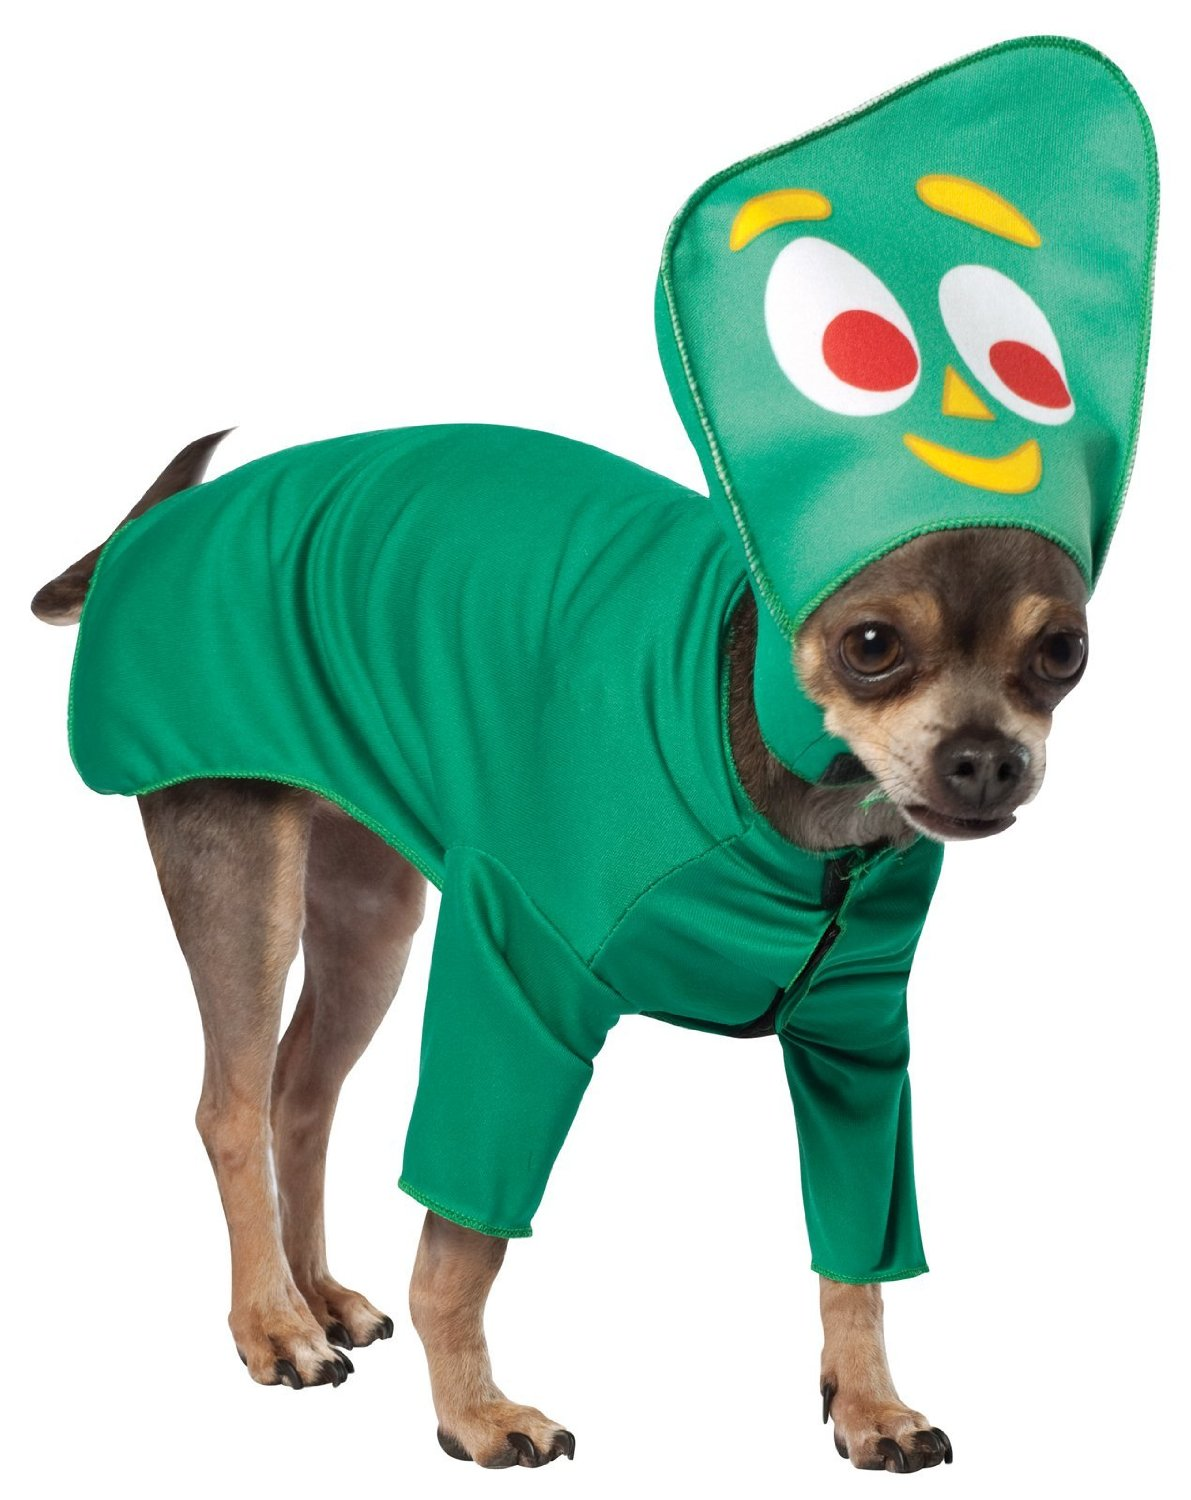 everyone remembers this claymation figure from childhood check out the gumby dog costume